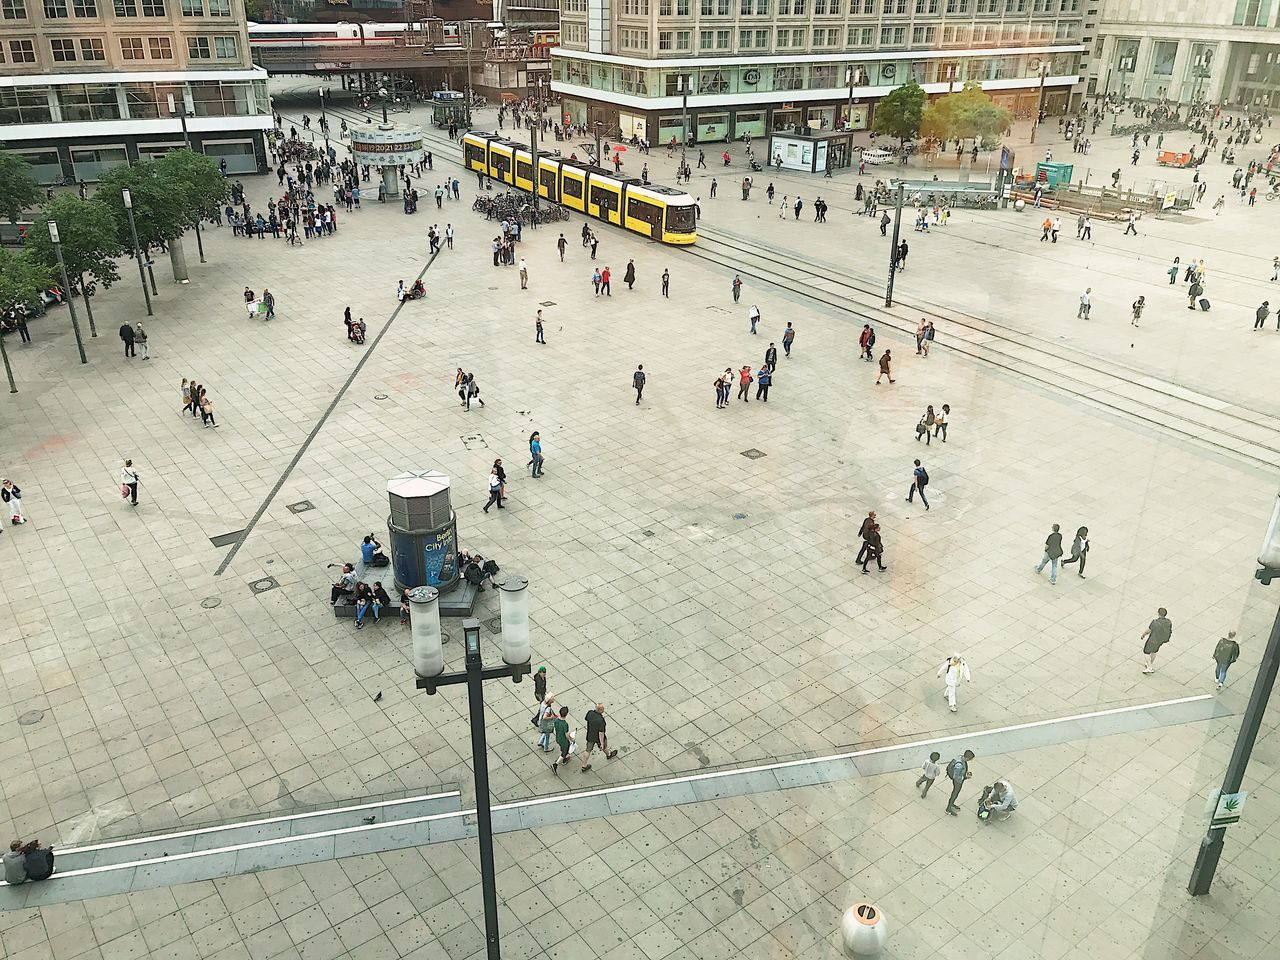 Large Group Of People Built Structure High Angle View Travel Destinations Architecture Tourism City Life Building Exterior People Vacations Aerial View City Day Men Crowd Outdoors Adults Only Adult Ice Rink